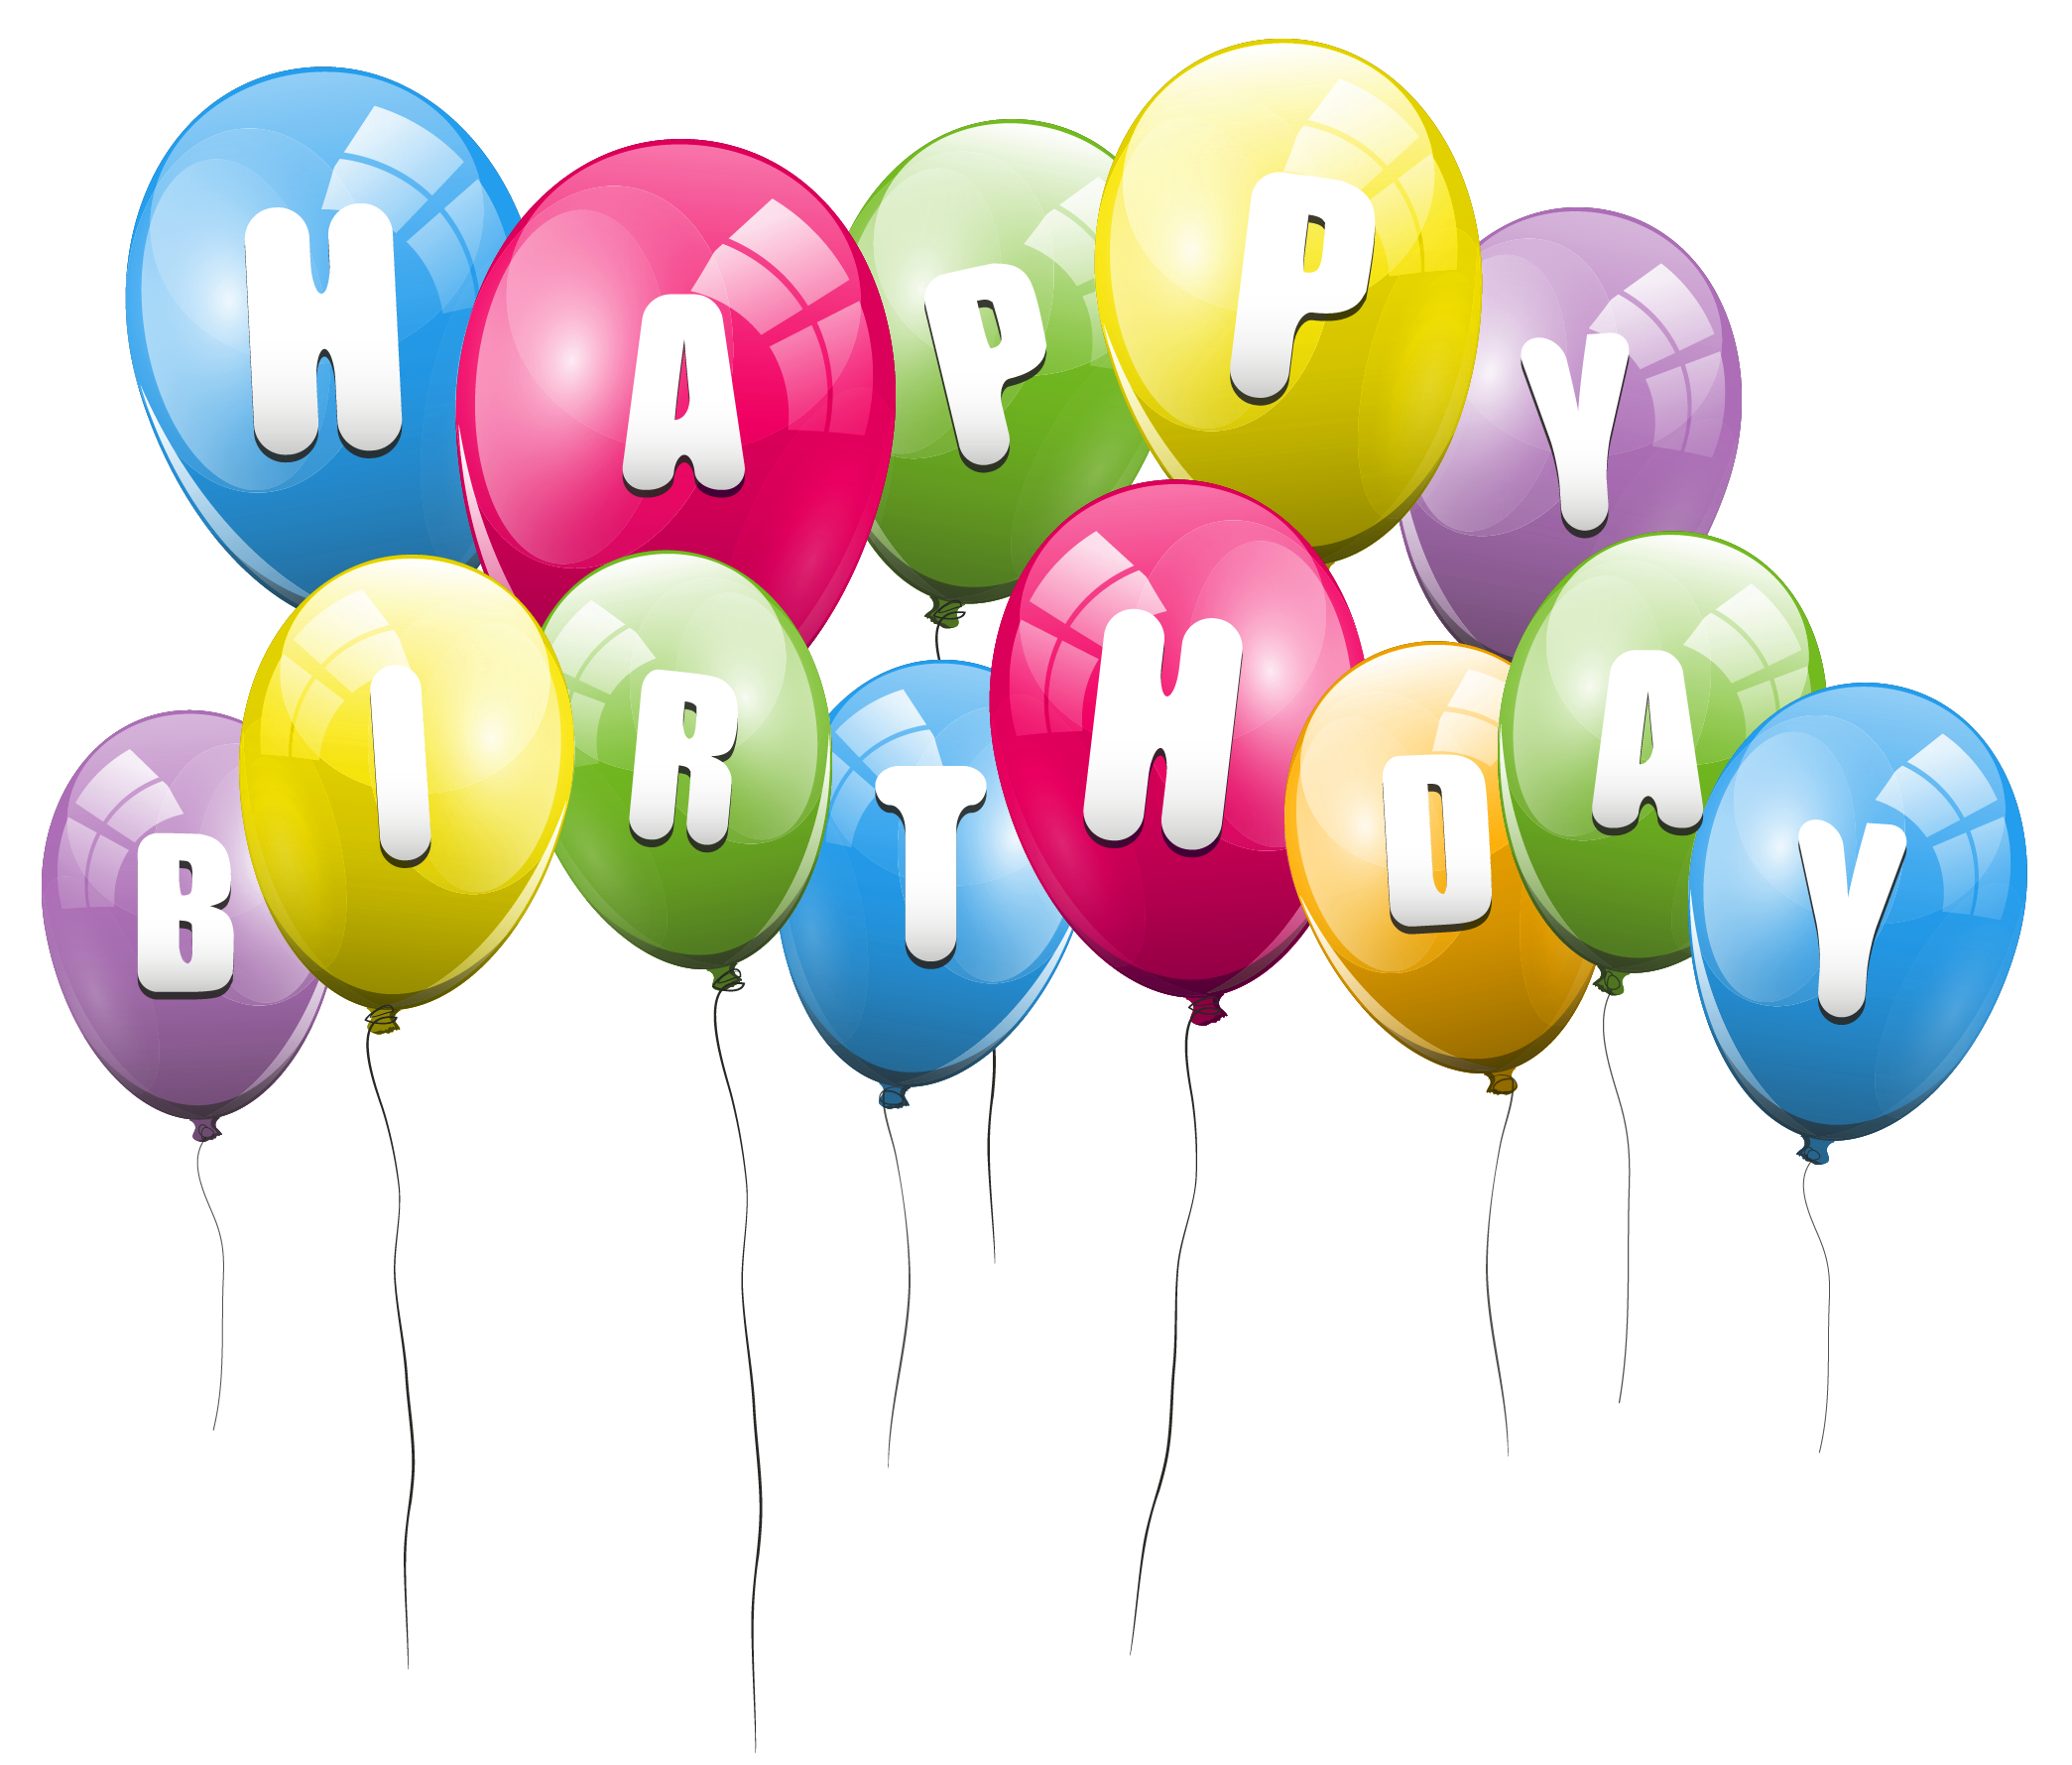 Birthday balloons birthday cake and balloons clipart